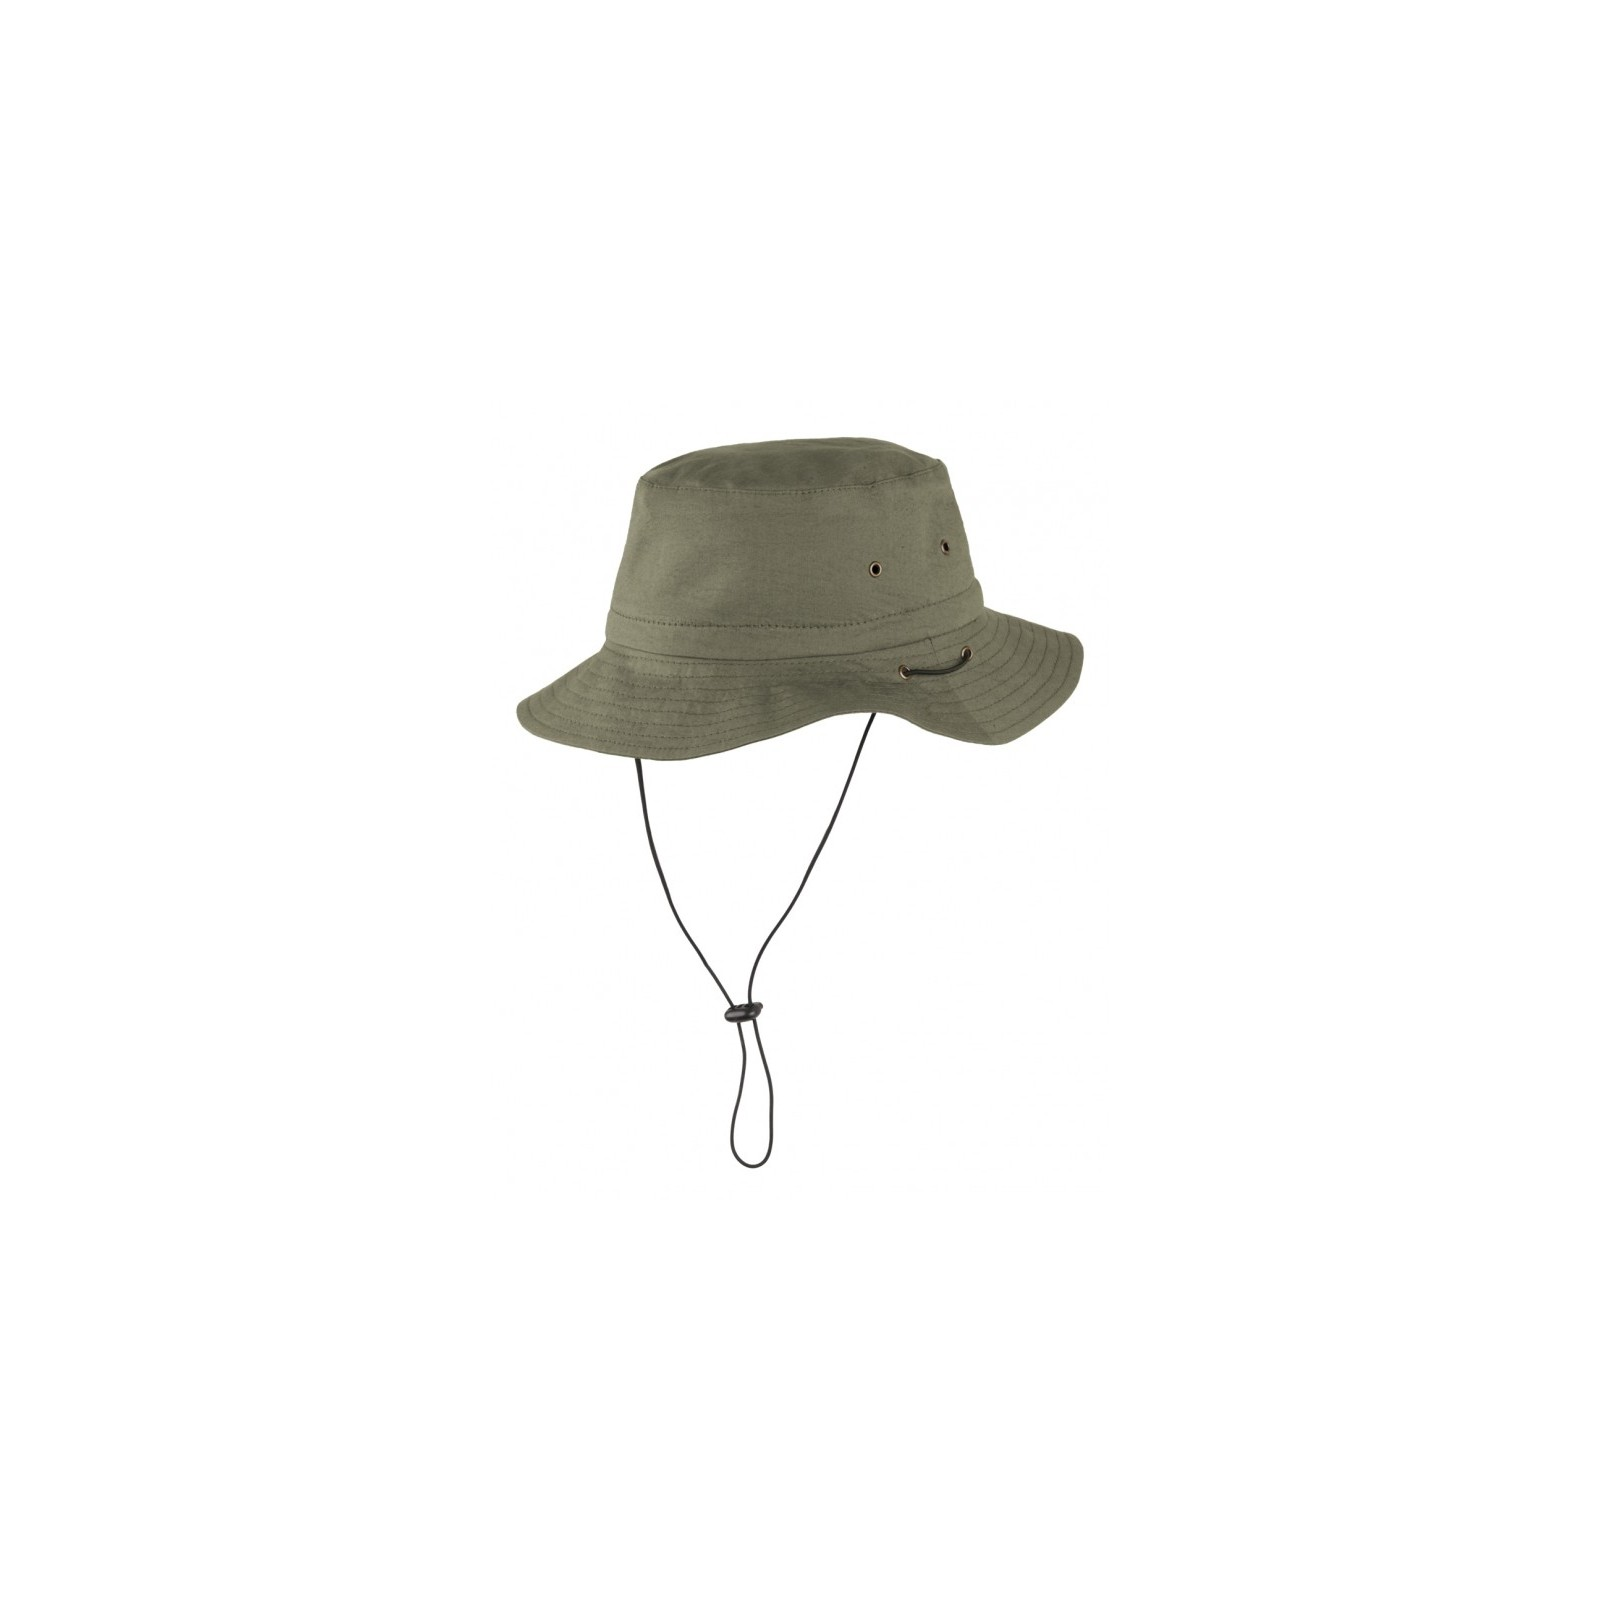 Scippis Bush Hiker hat